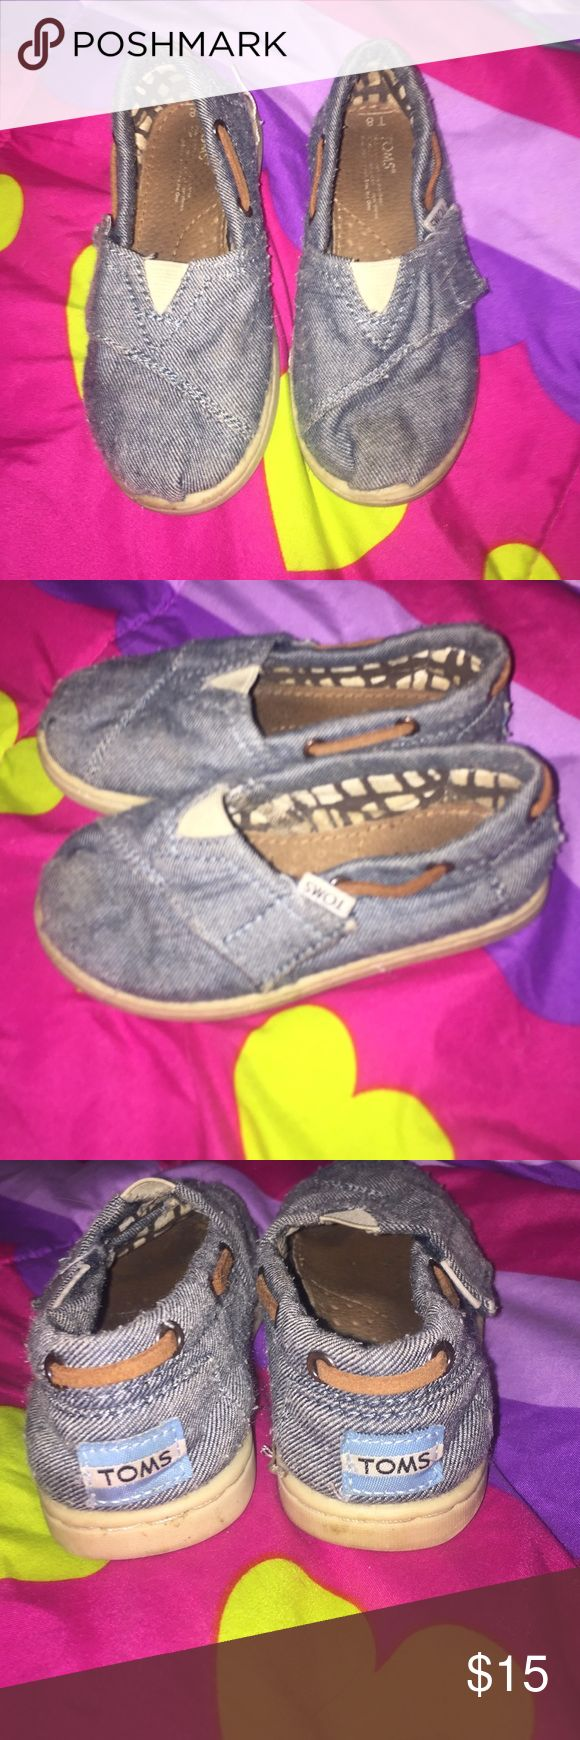 Toms shoes Very cute Tom shoes size 8 Jean material just need a little bit of cleaning and they would look good still has a lot a life to them Toms Shoes Slippers